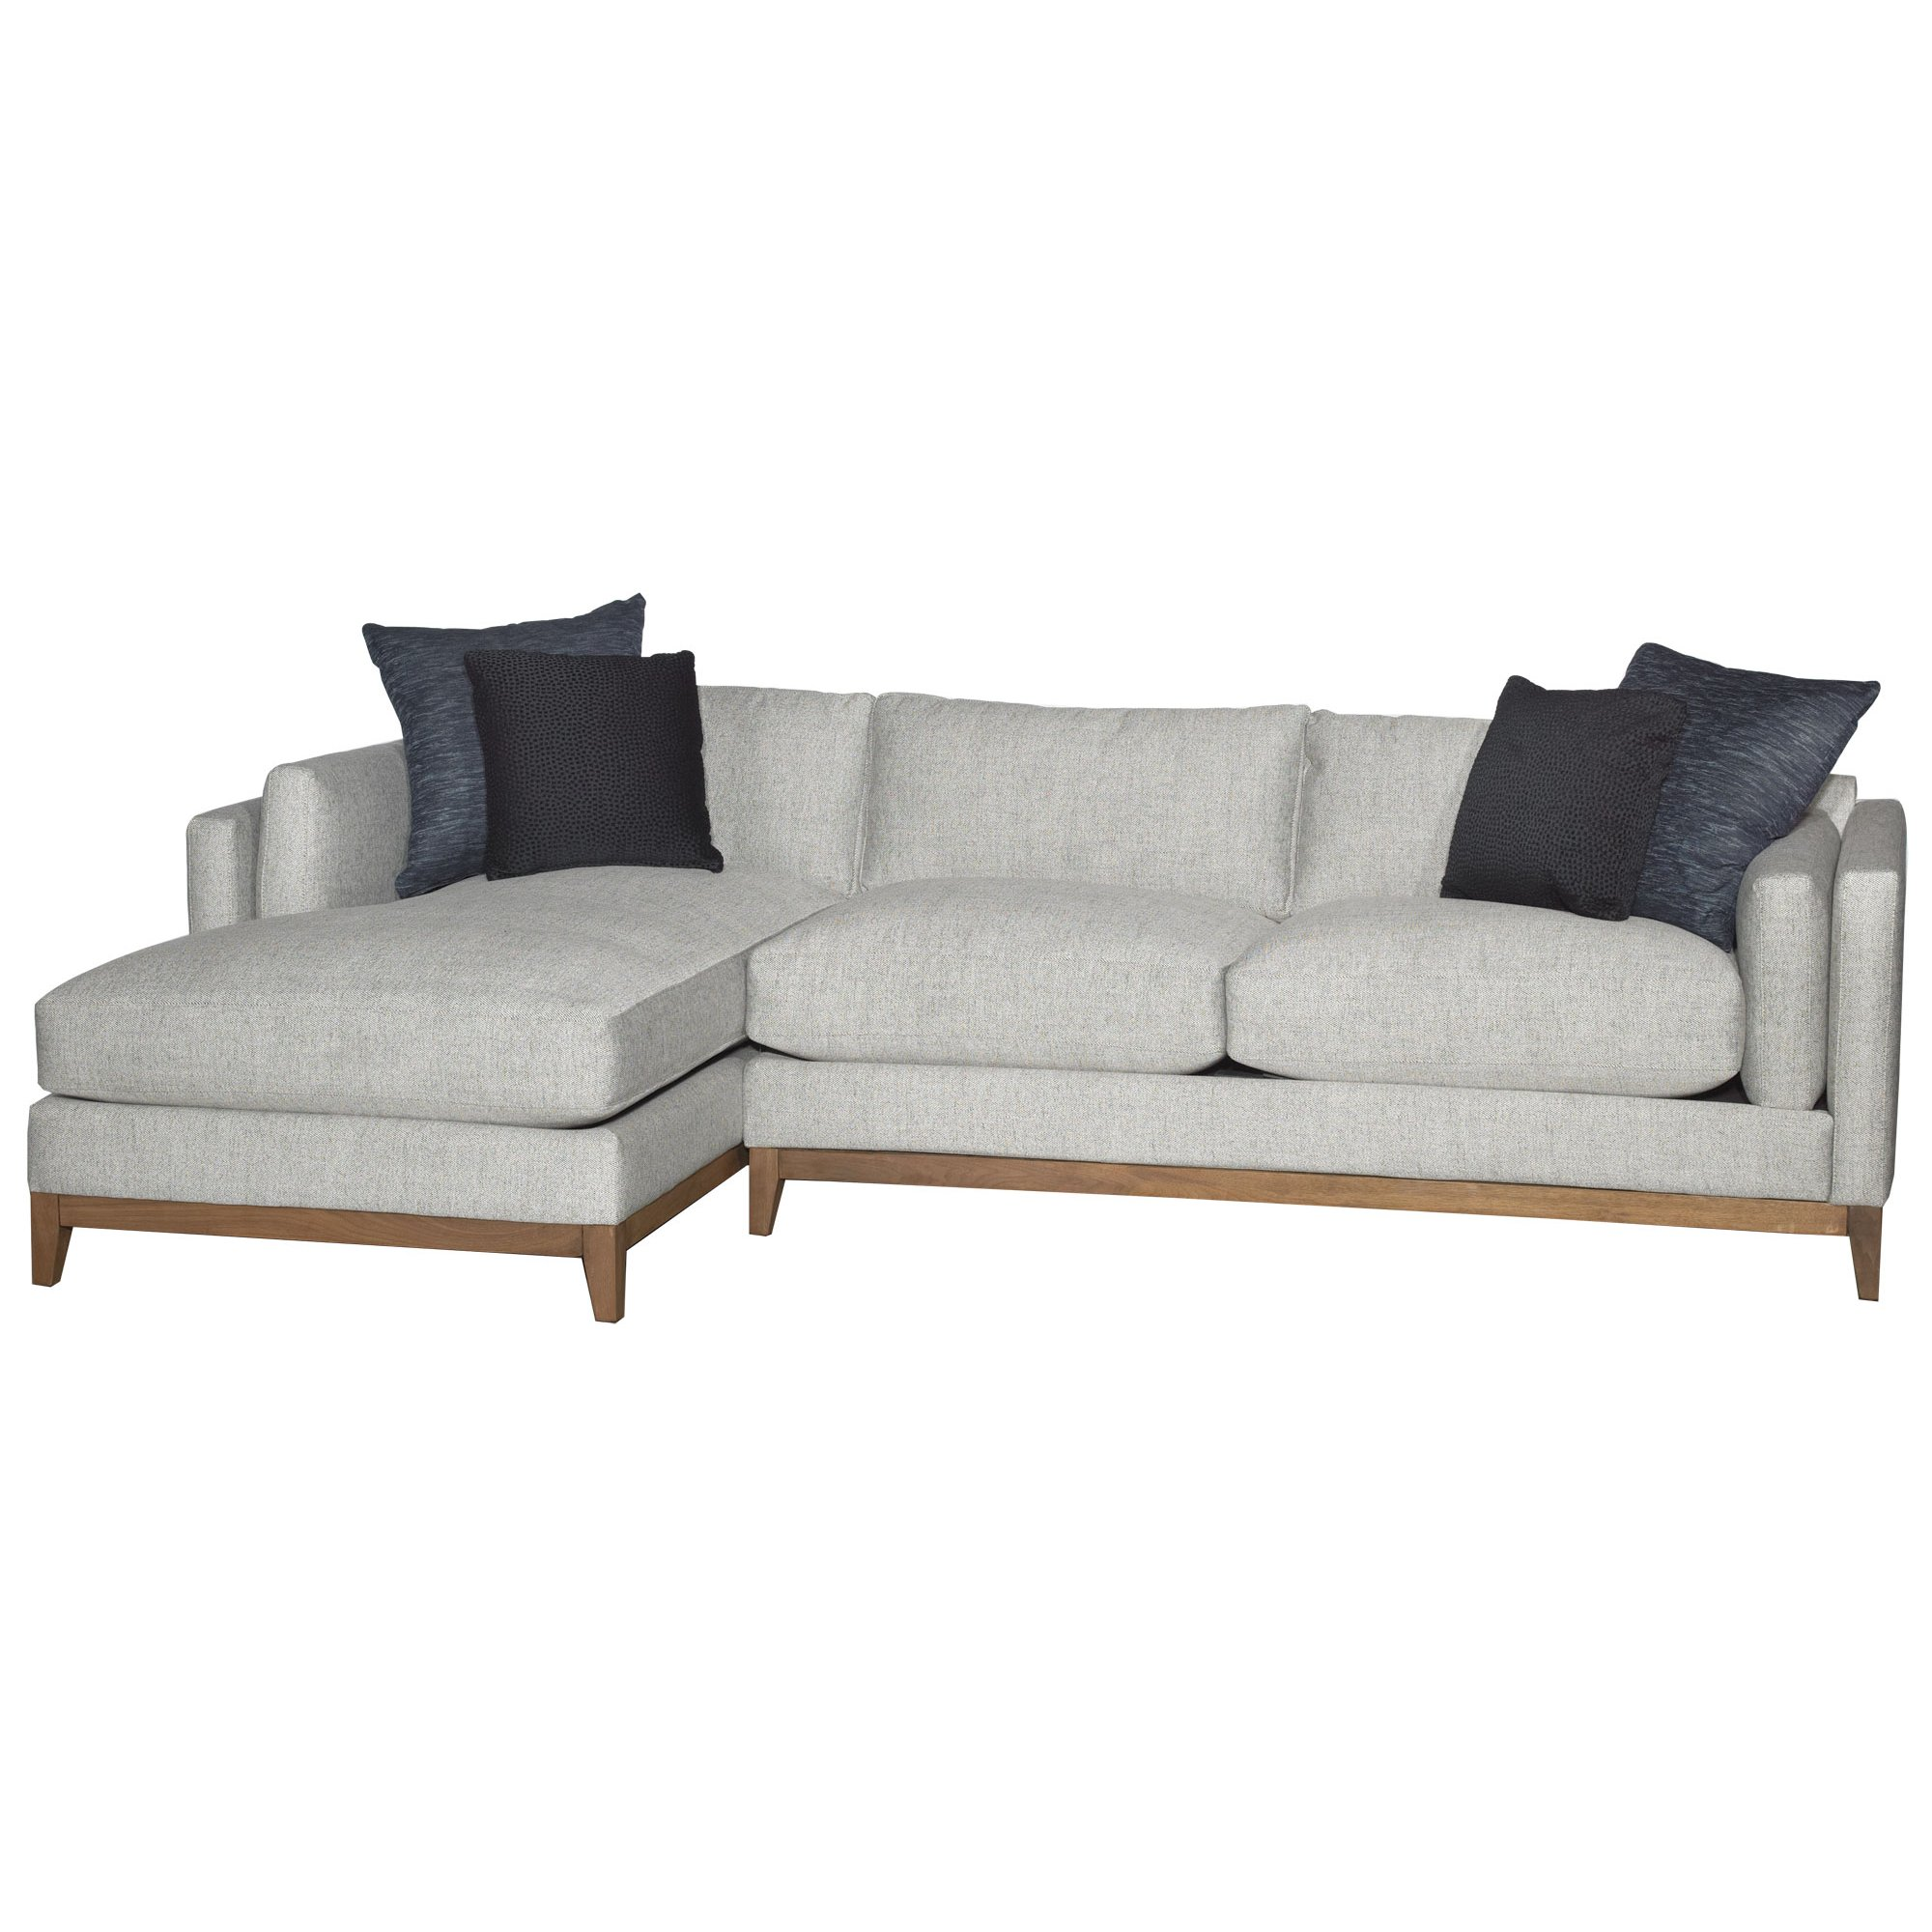 Discount sectionals sacramento full size of living for Modular sofas cheap